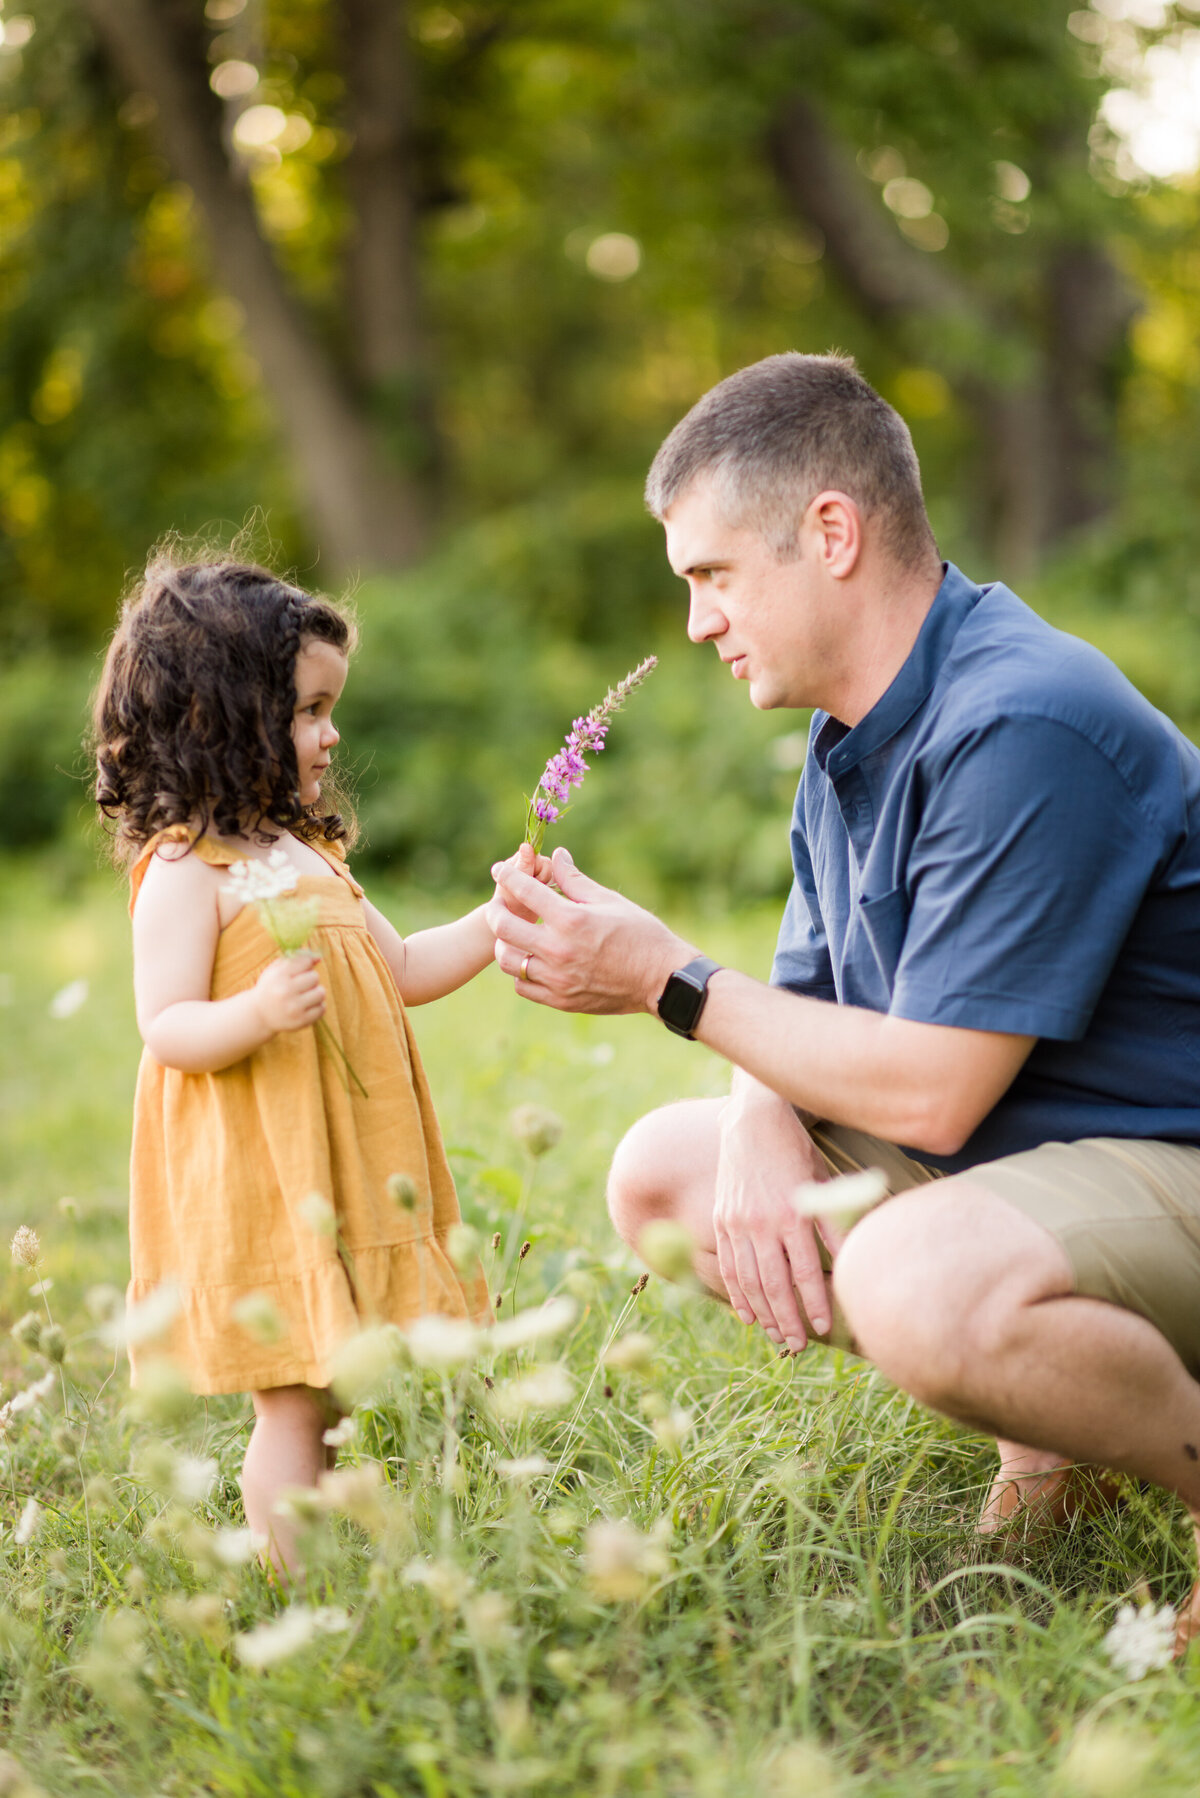 Boston-family-photographer-bella-wang-photography-Lifestyle-session-outdoor-wildflower-24